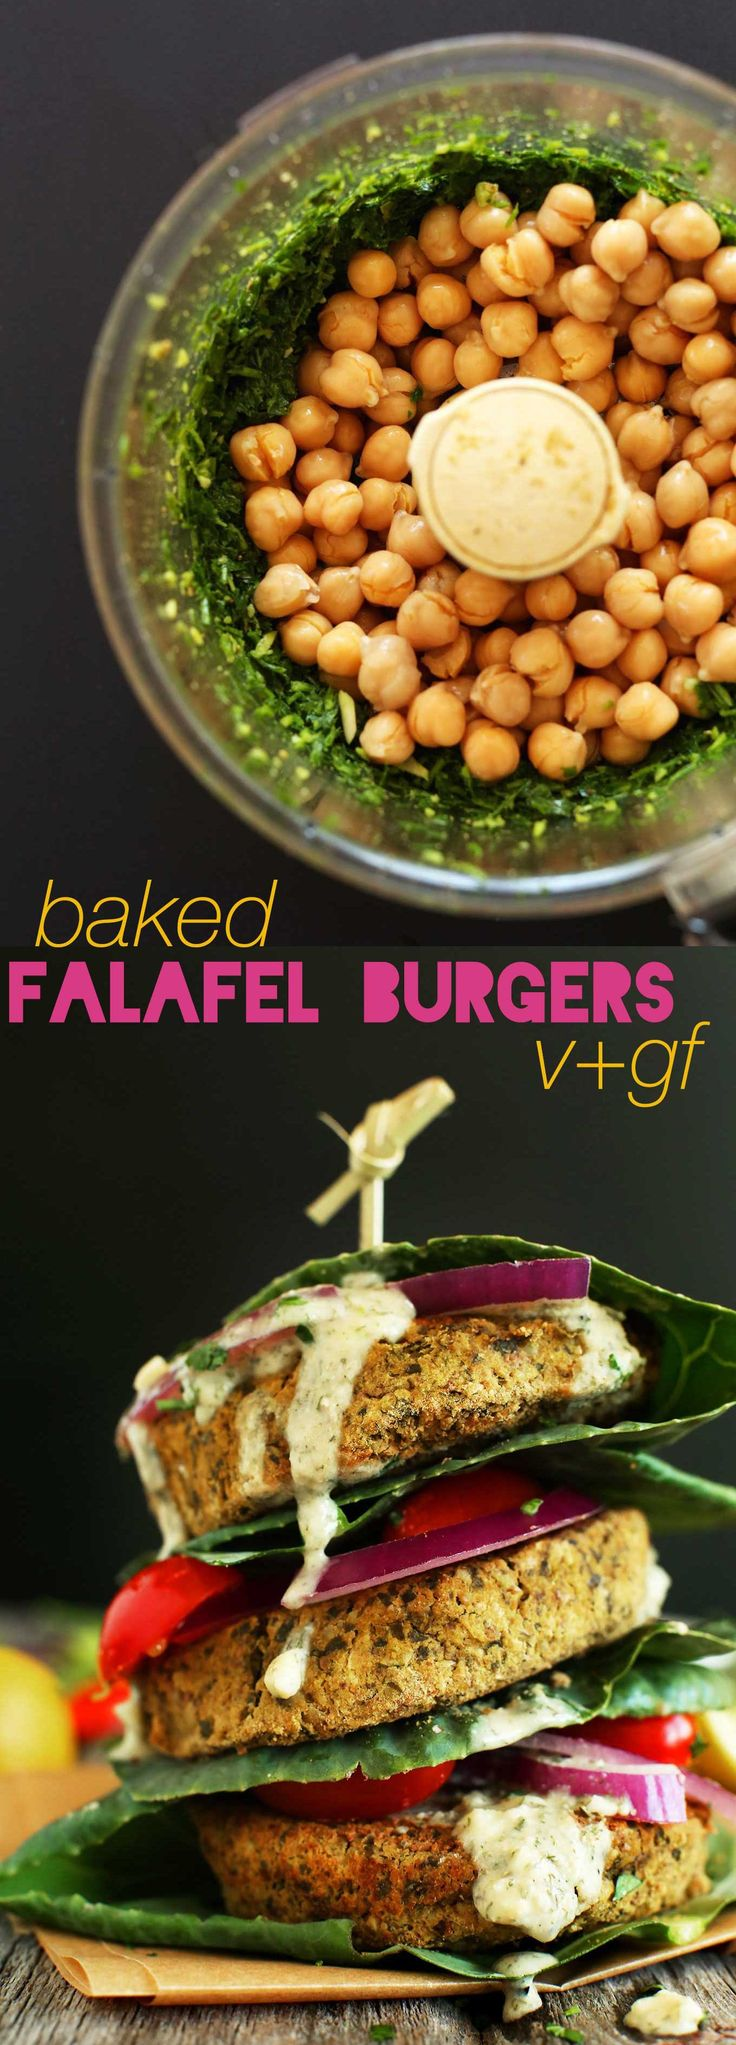 7 ingredient falafel burgers with 10 grams of protein and 5 grams fiber EACH! SO…